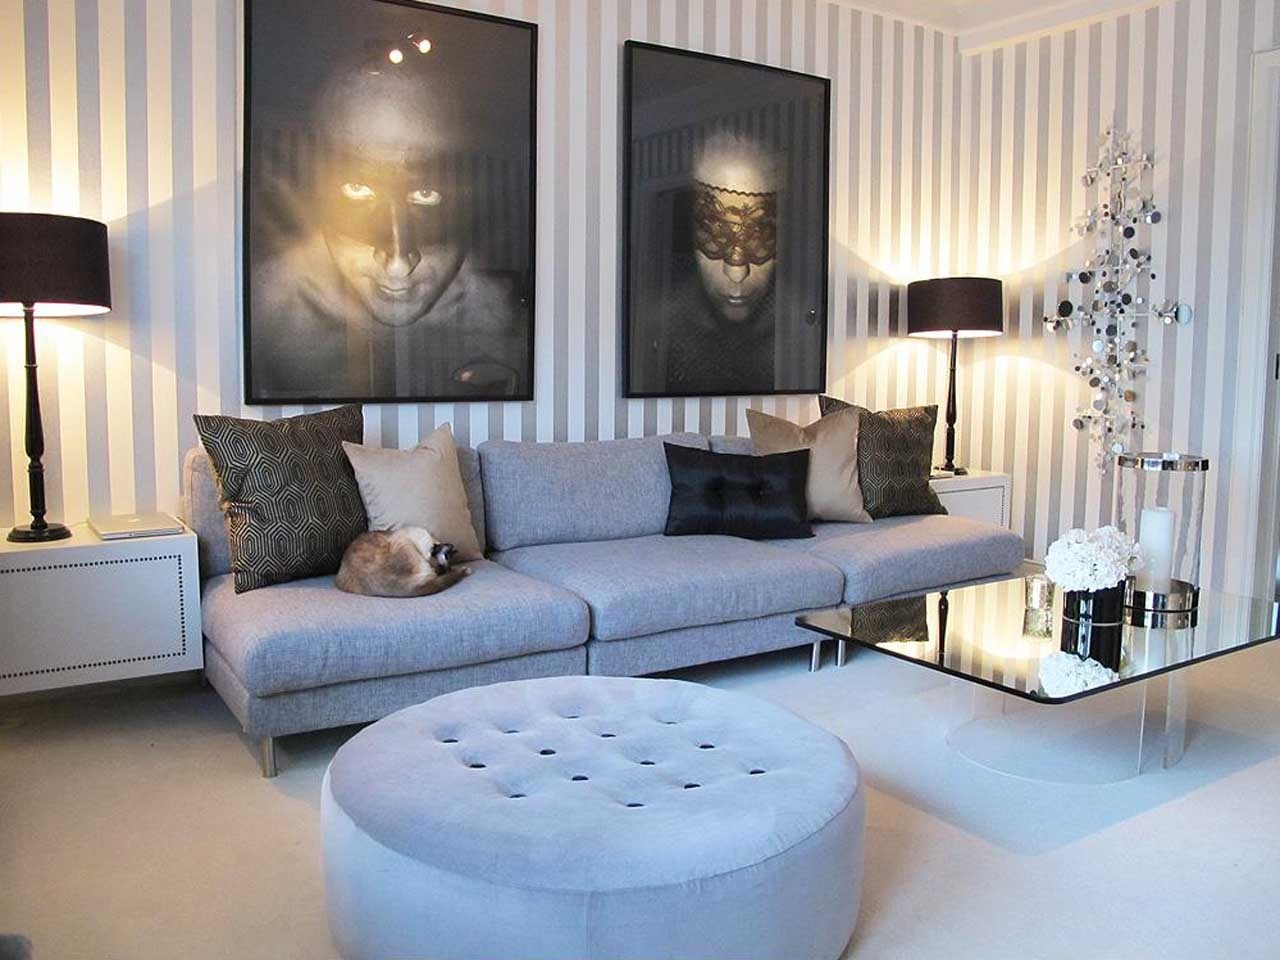 Of Simple Decorating Ideas For Living Room Using Stripes Wallpaper 1280x960